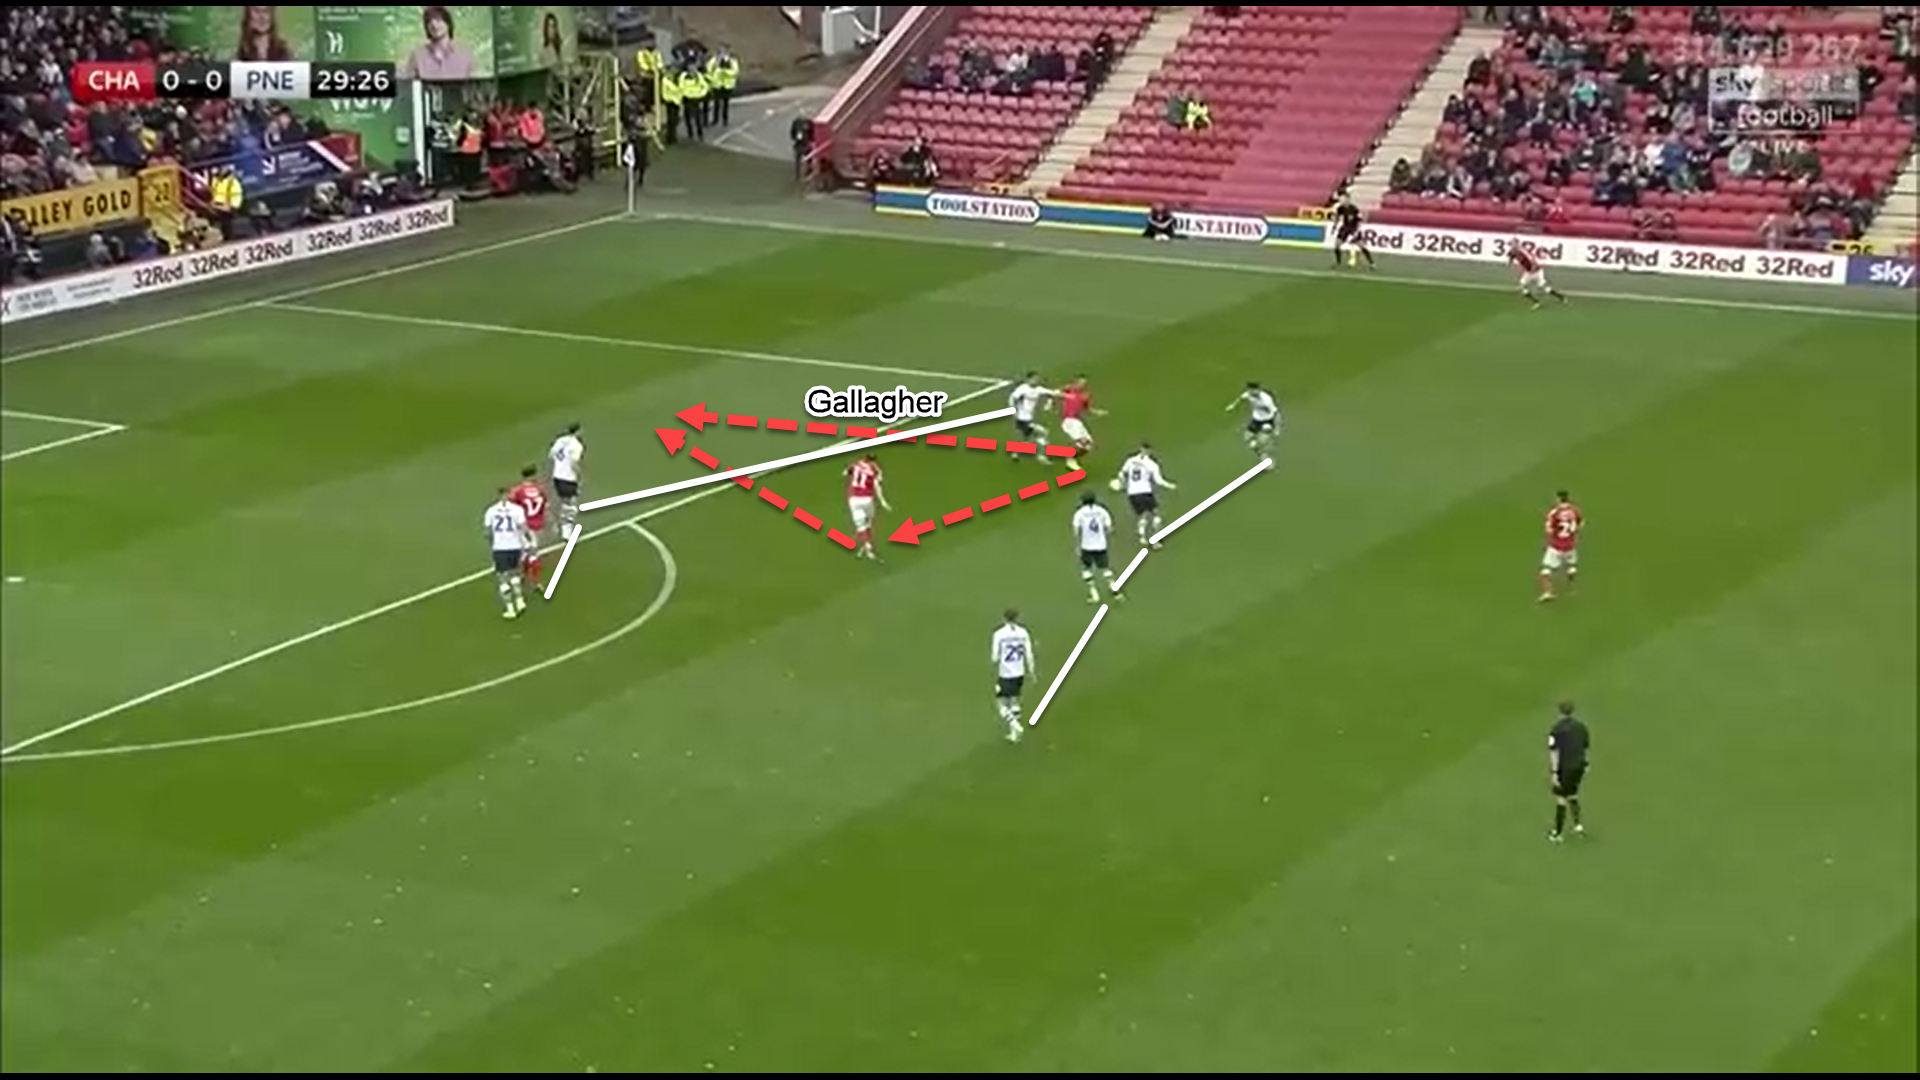 Conor Gallagher 2019/20 - scout report - tactical analysis tactics